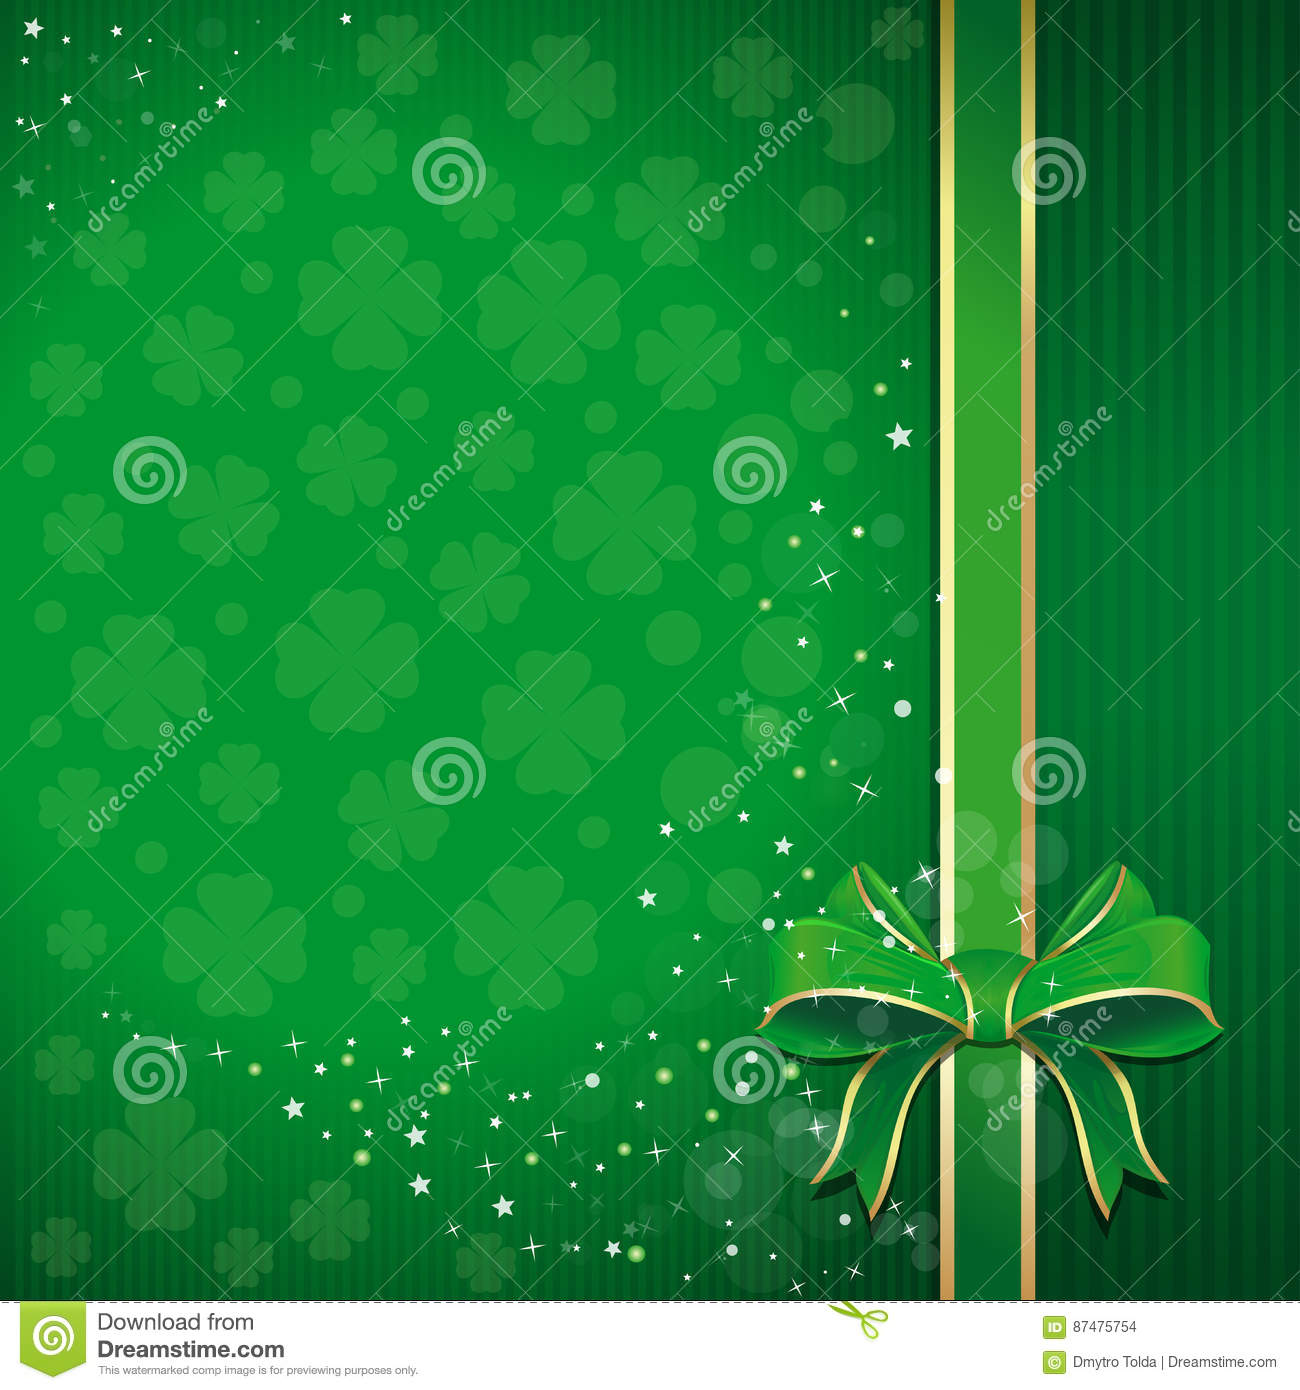 Green festive background with ribbon, bow and leafed clover for St. Patricks Day with free space for text